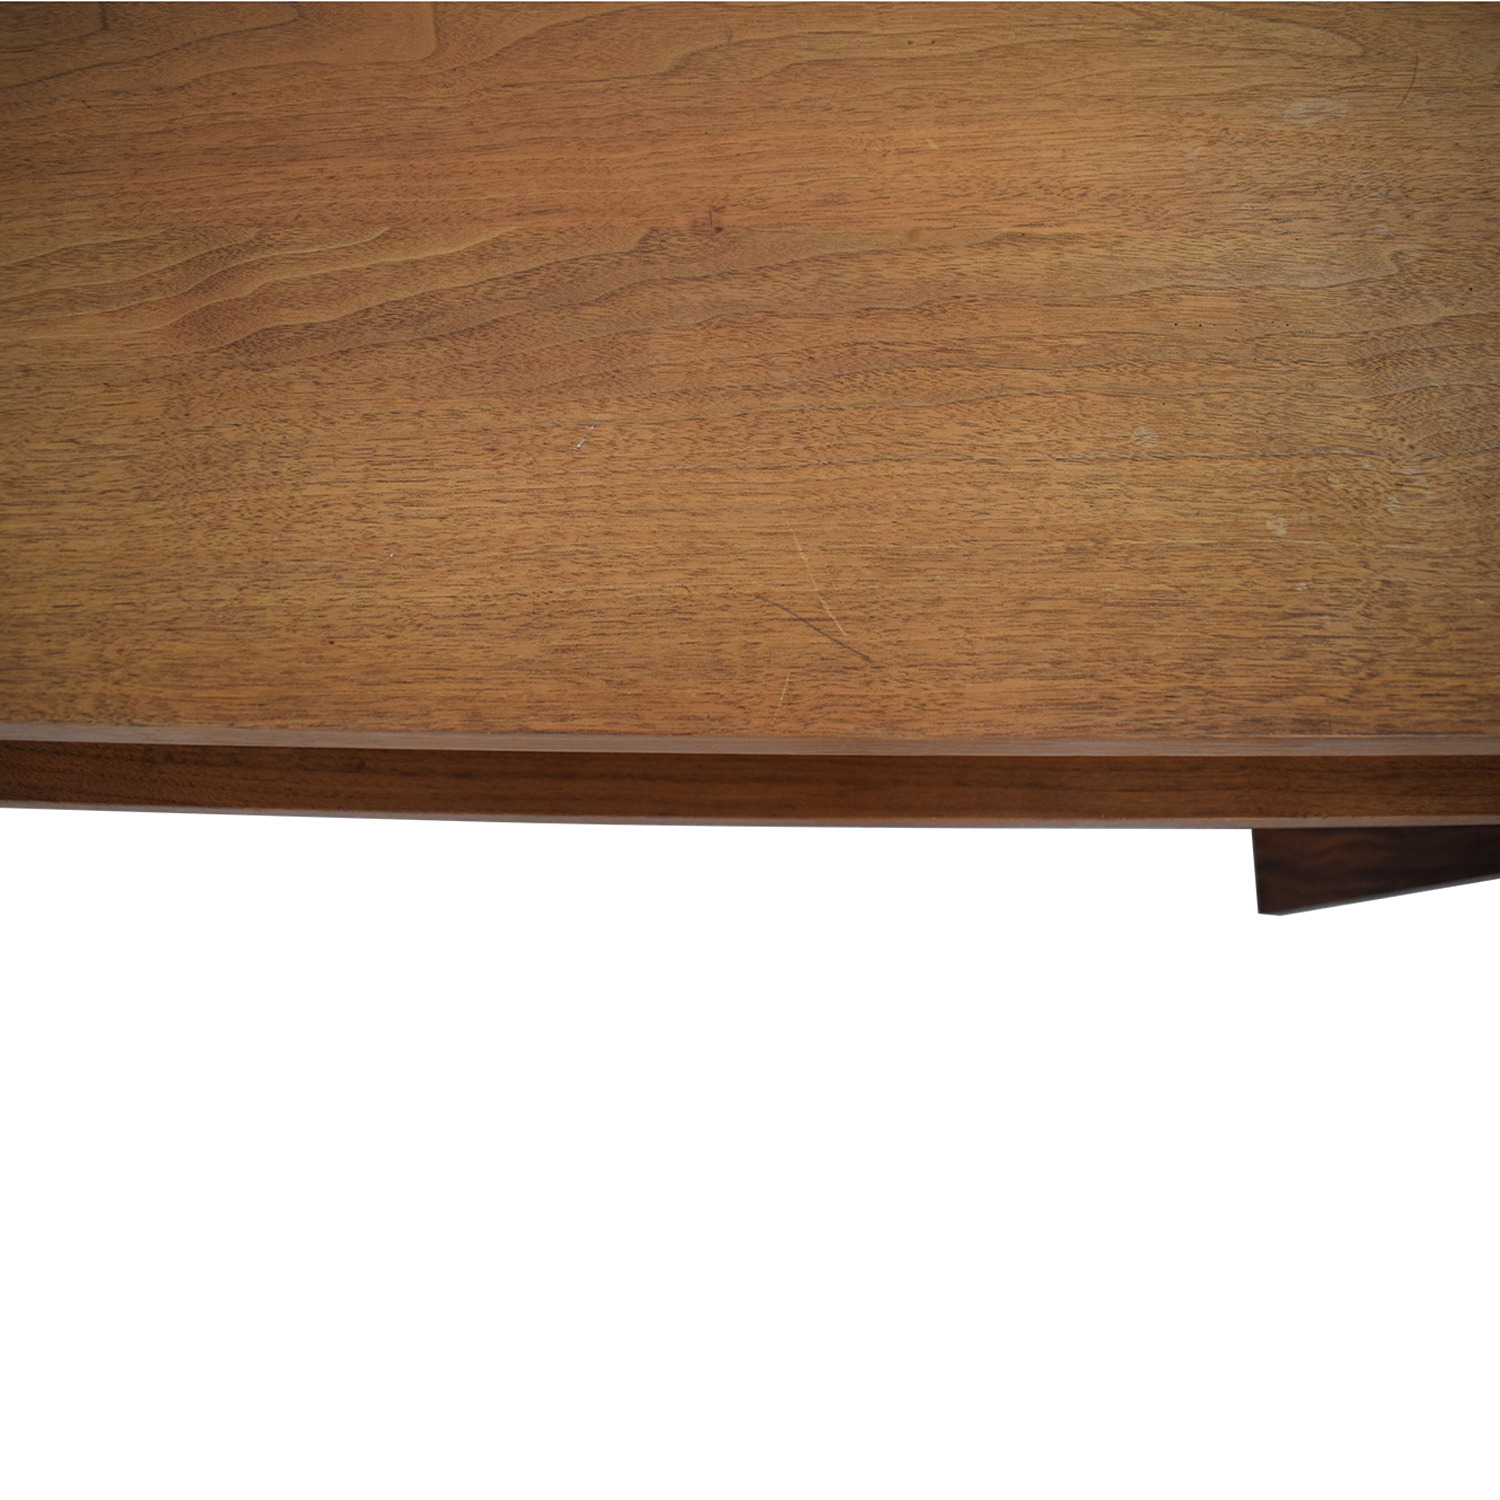 shop  Custom Solid Walnut Desk with Enclosed Shelf Space online